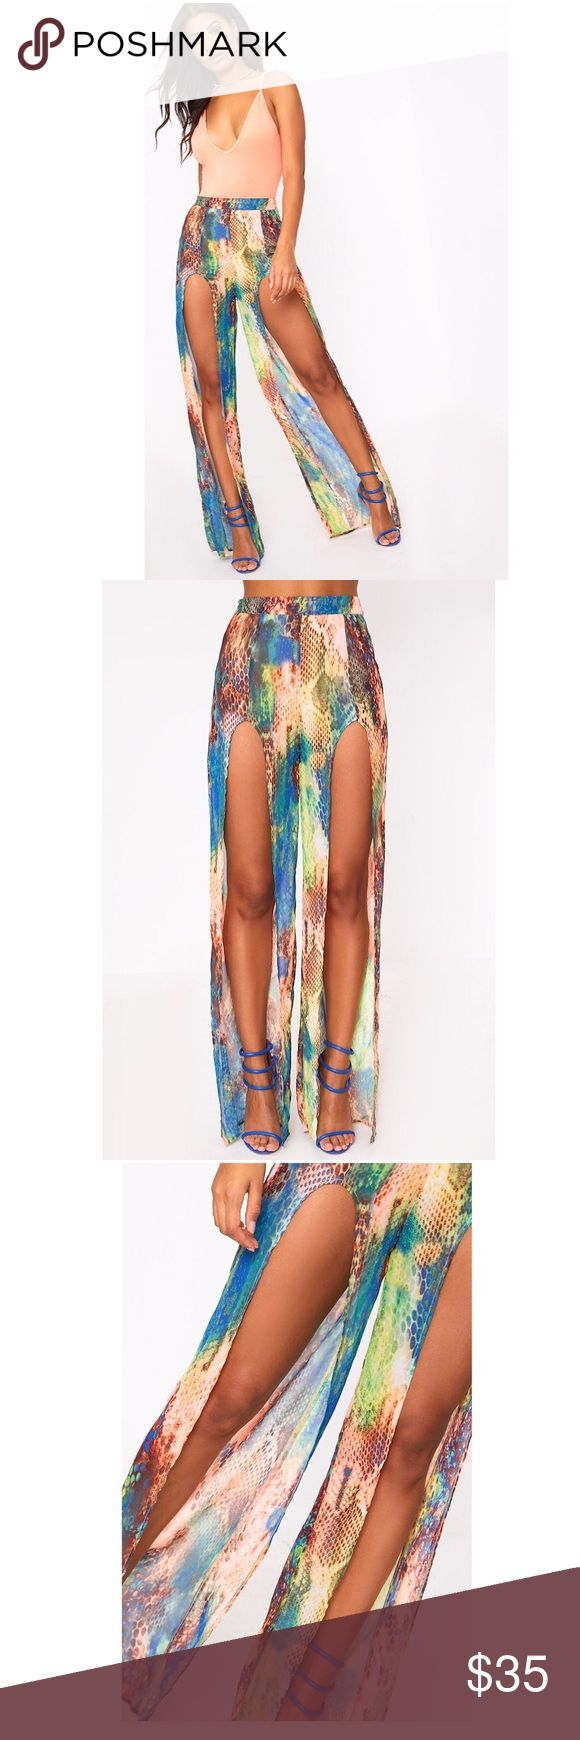 """Multi Snake Split Trousers....Sz: 8 (US) Multi Snake Split Trousers:  Featuring a colourful snake print, flowing chiffon material and extreme splits on the legs - these figure flattering trousers are a must have this season. Style with a colourful top and strappy heels for a dreamy look...  US: (8)  Length approx 123cm/48"""" (Based on a sample size UK 8) PrettyLittleThings Pants Trousers"""